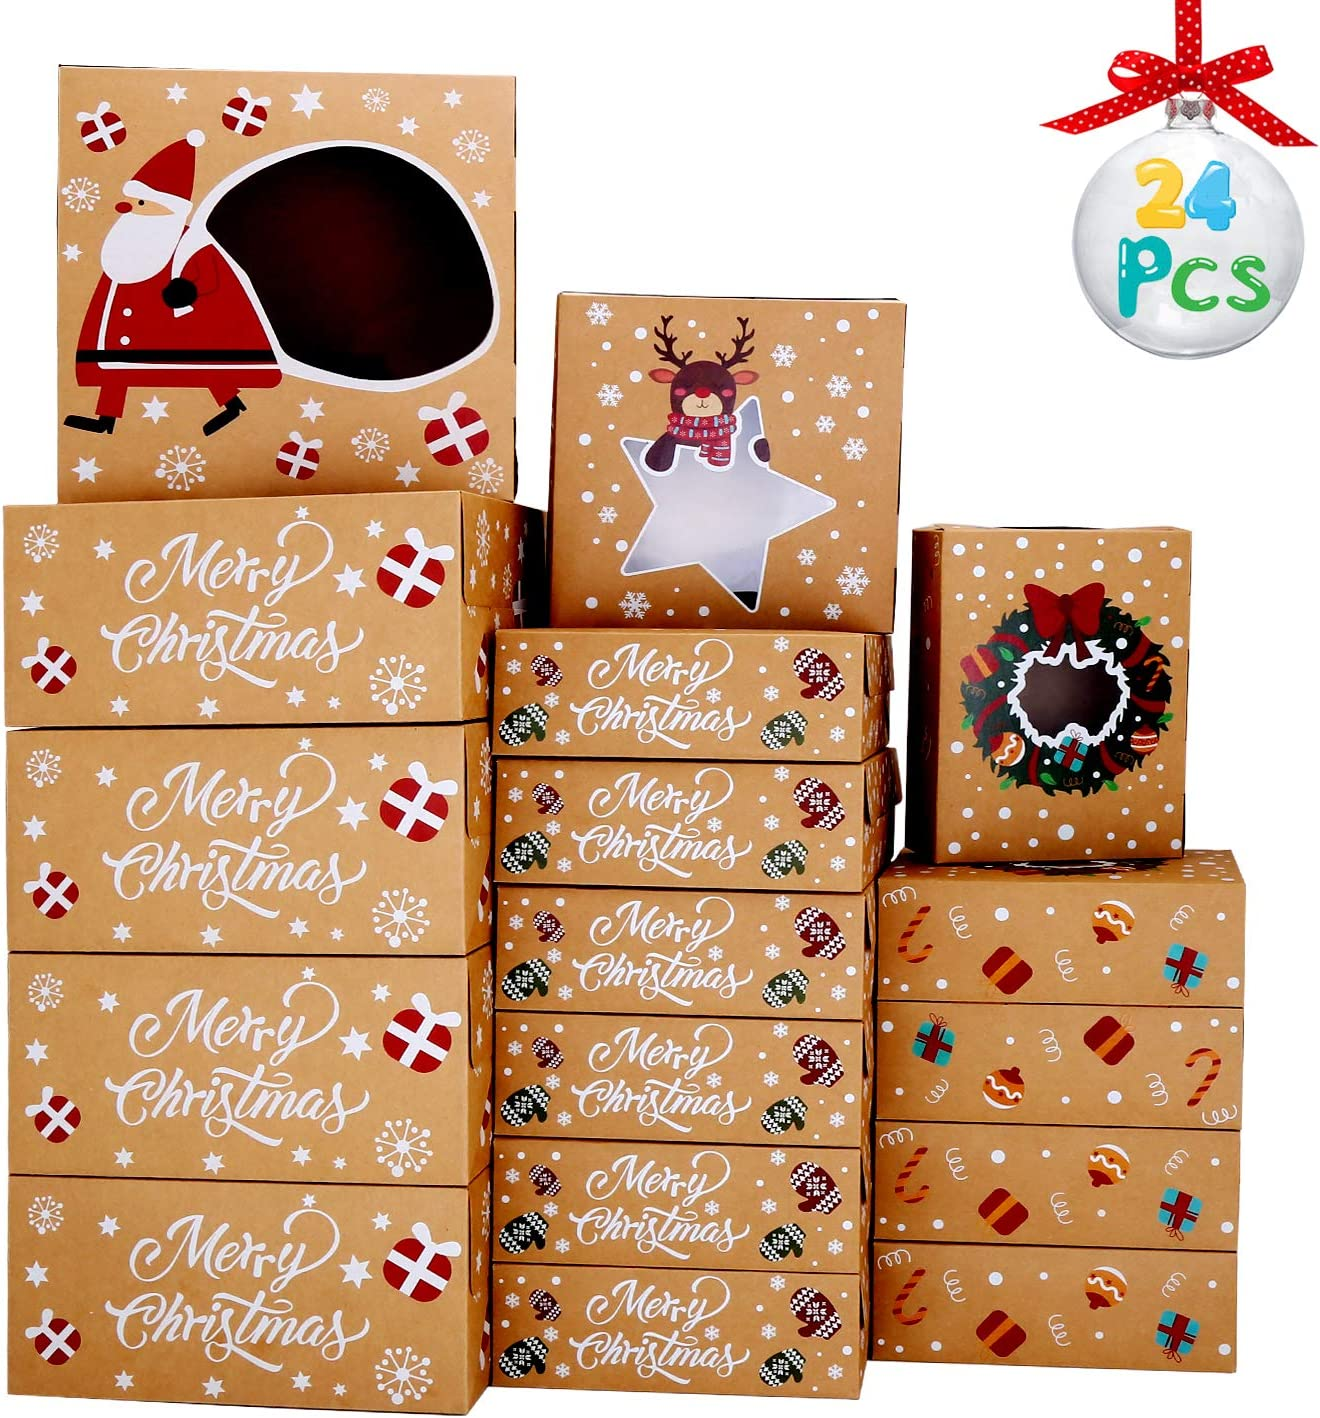 VEYLIN Christmas Cookie Pastry Box, Holiday Cookie Boxes with Transparent Window for Goody Cookie Cupcake Bakery(24Pack)